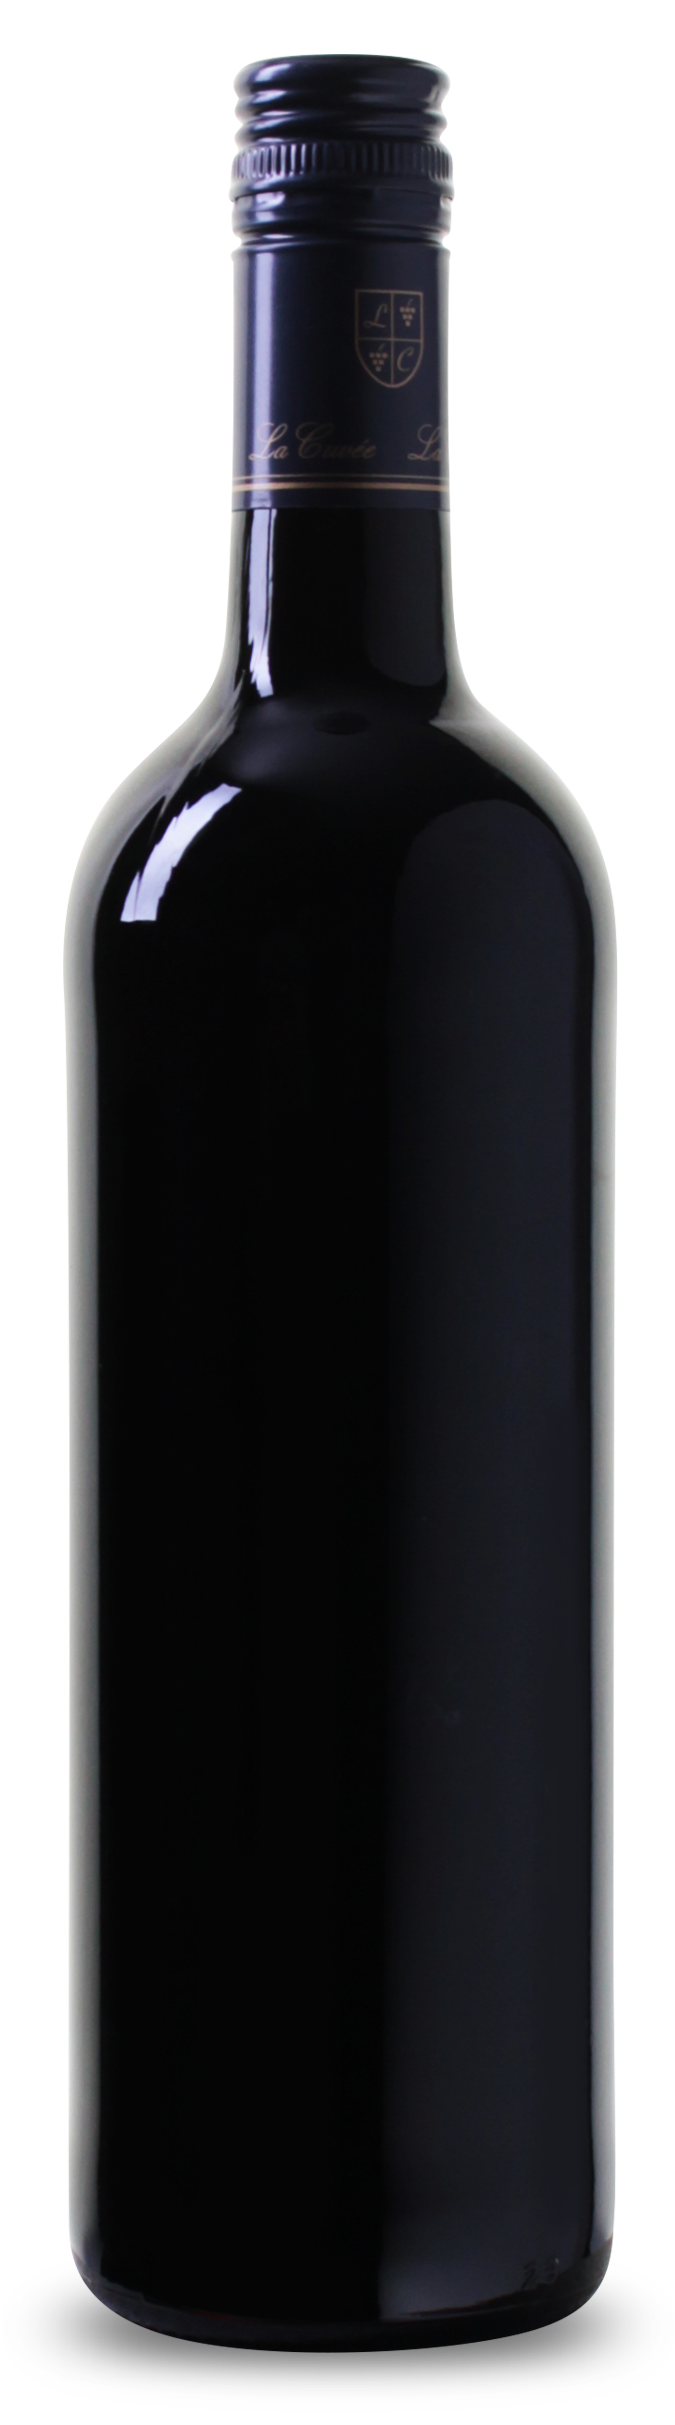 La Cuvée Grenache Syrah Rouge (Only Backlabel)